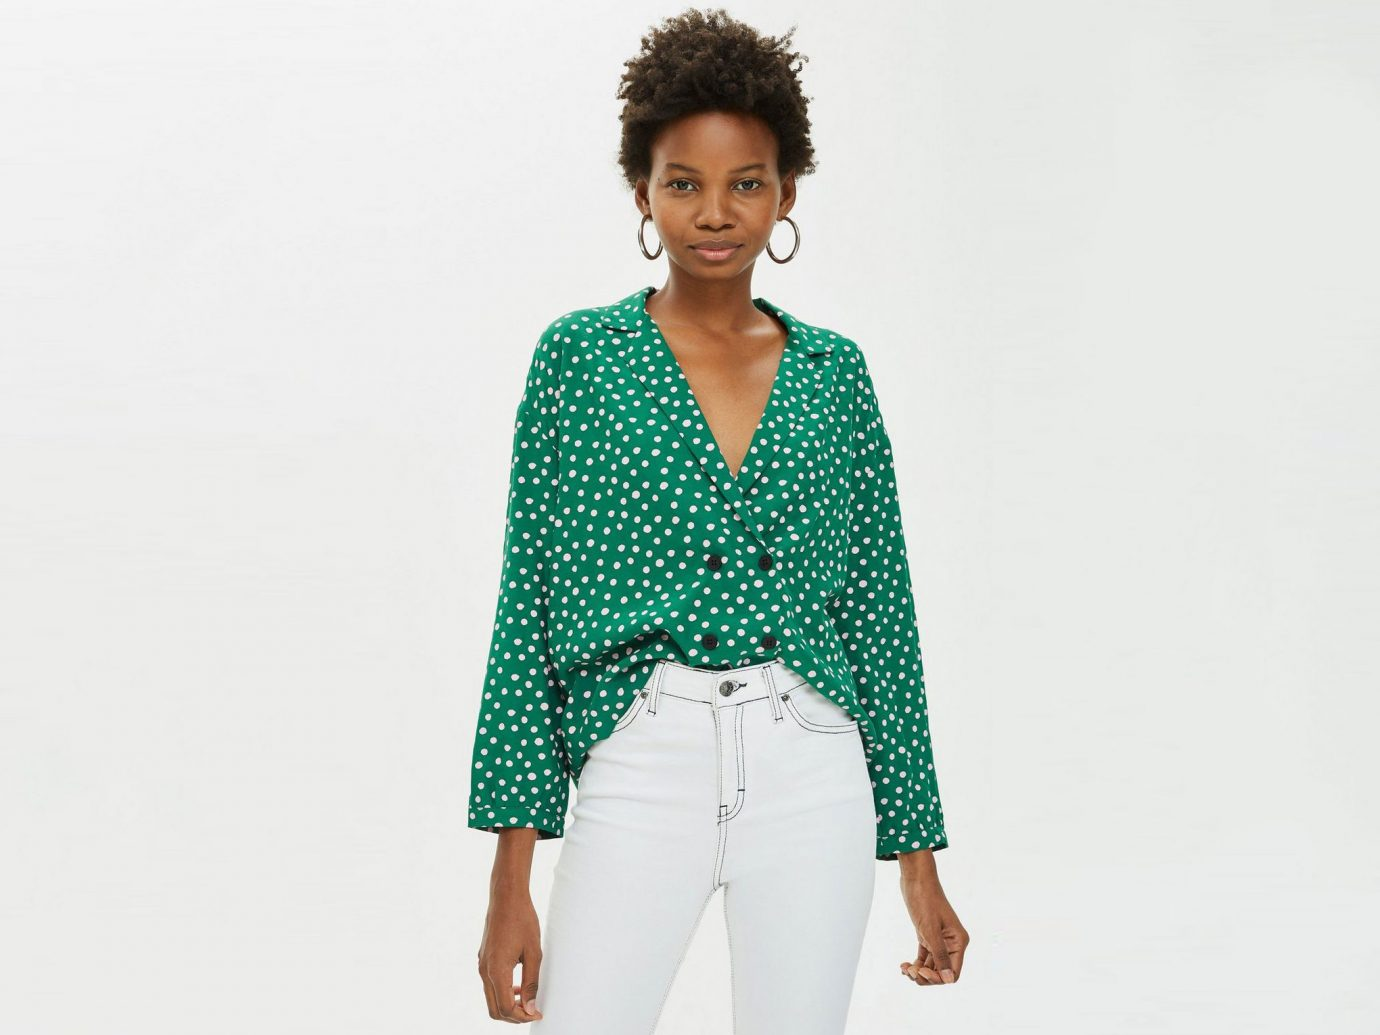 7904688a4 The Best Black Friday Deals of 2018  Clothes